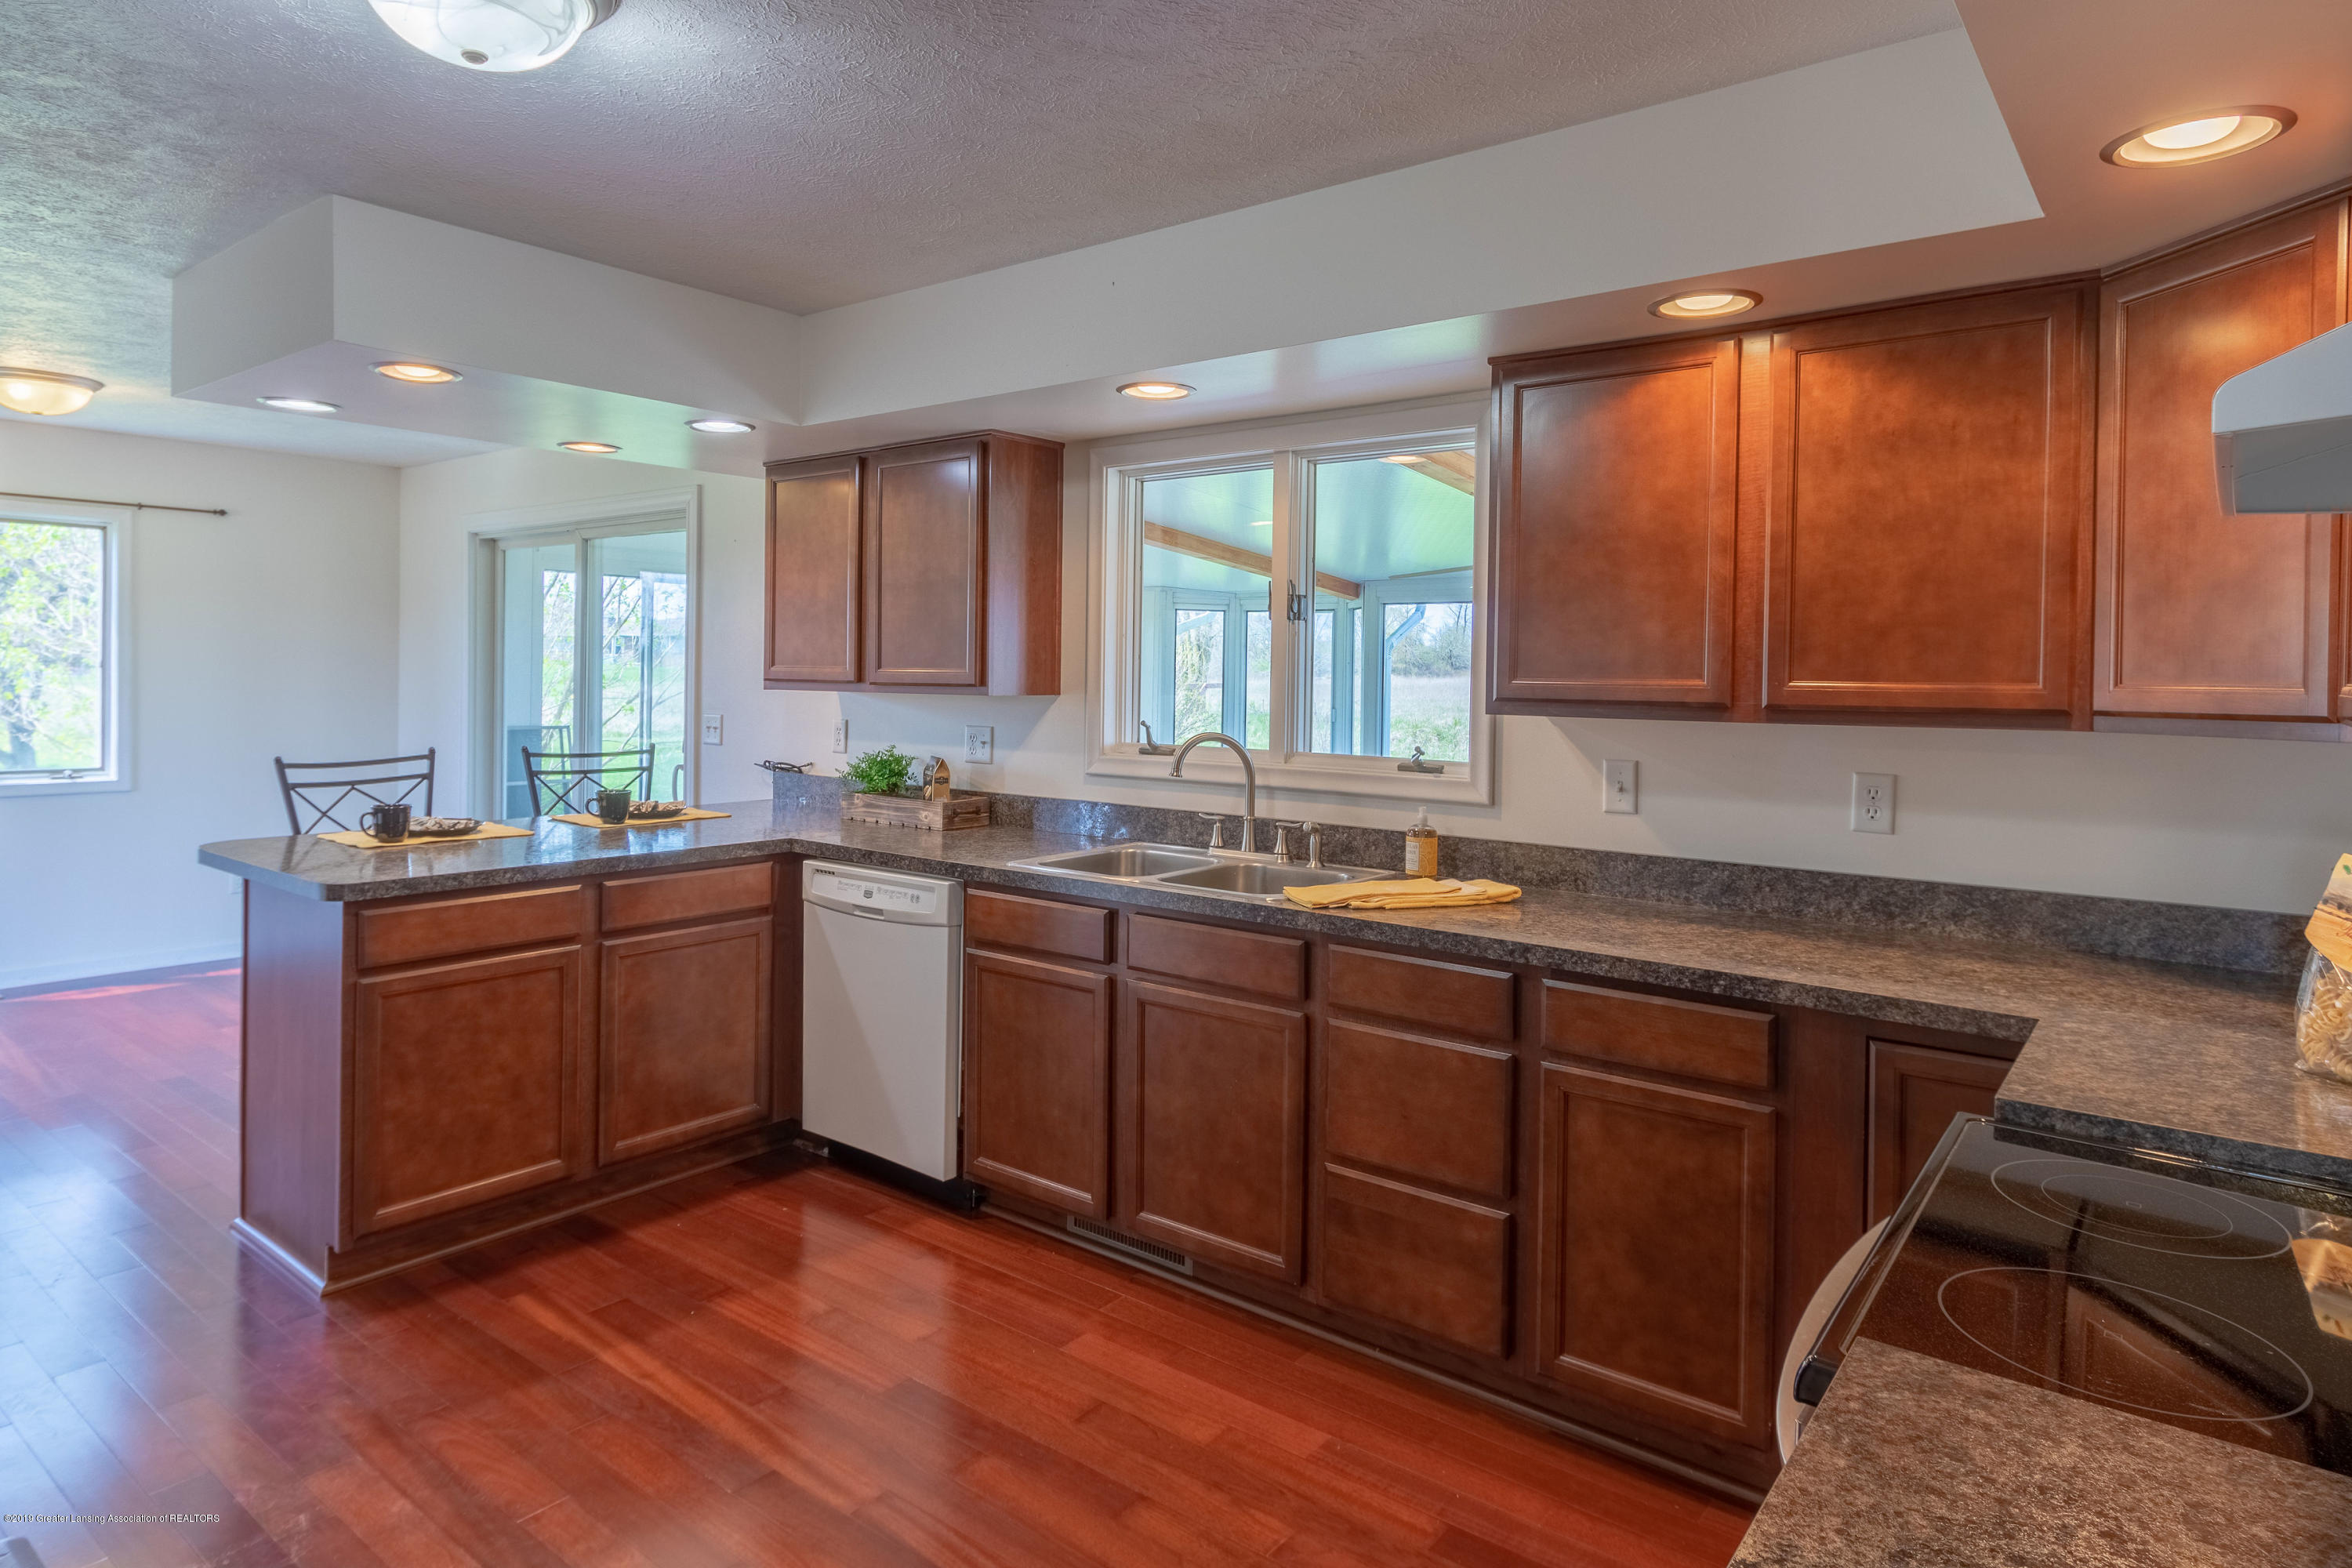 415 Holt Rd - Kitchen area - 18